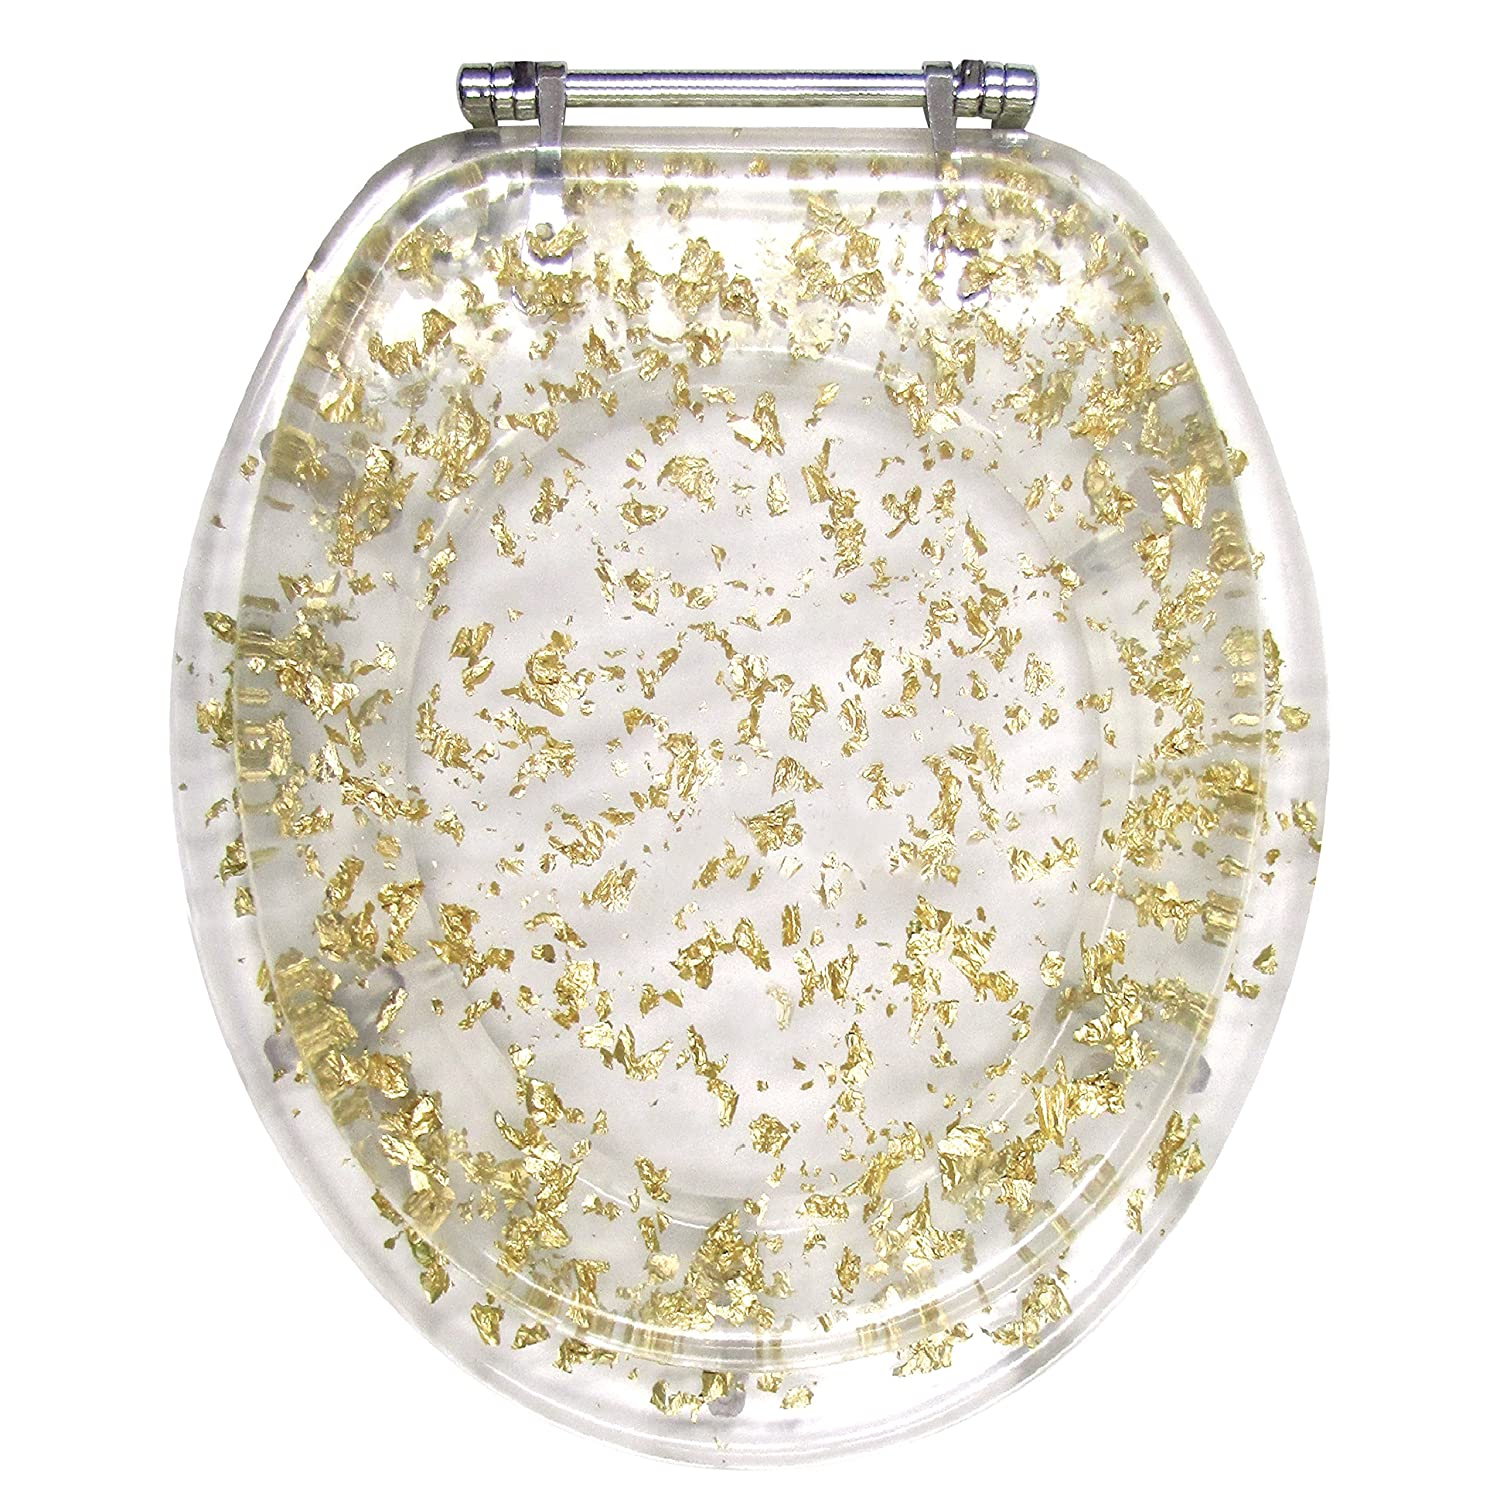 Incredible Ginsey Elongated Resin Toilet Seat With Chrome Hinges Gold Foil Caraccident5 Cool Chair Designs And Ideas Caraccident5Info